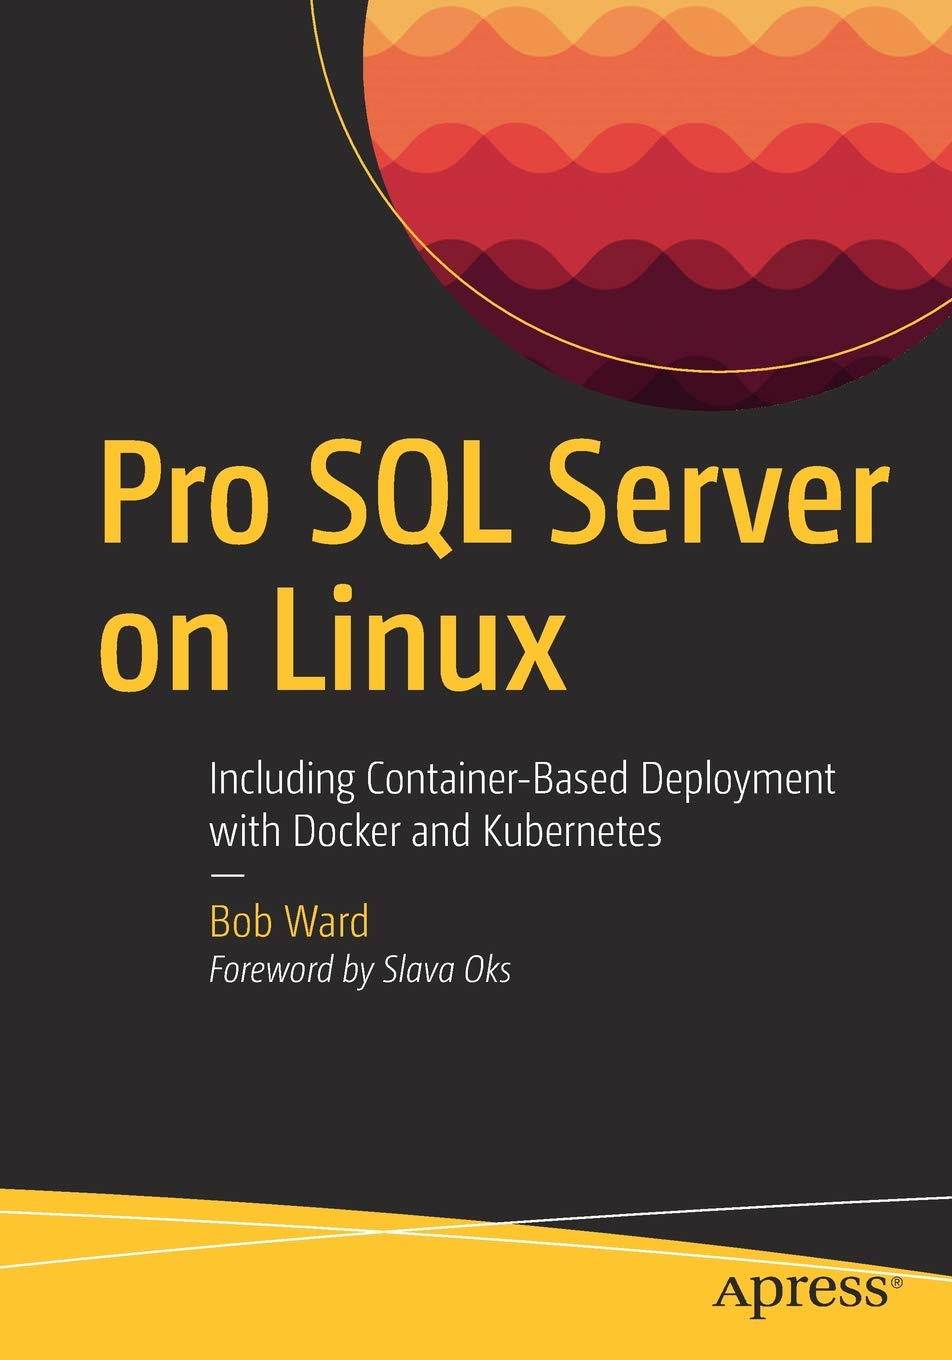 Pro SQL Server on Linux: Including Container-Based